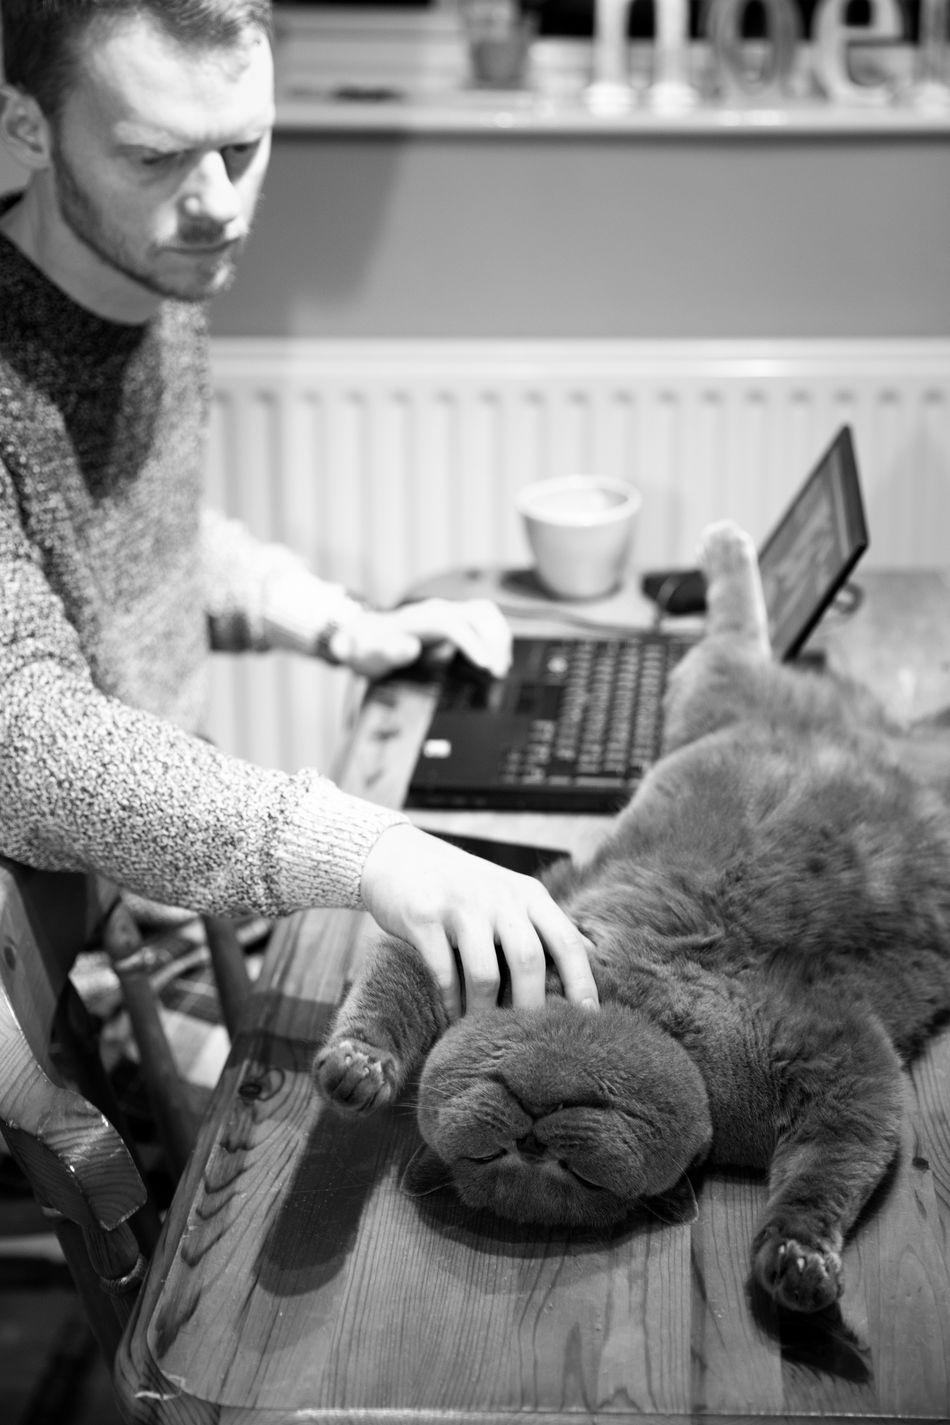 Black & White Black And White Blackandwhite British Blue British Shorthair Cat Cats Freelance Life Happiness Home Laptop Meatball The Cat Table Work Working Animals